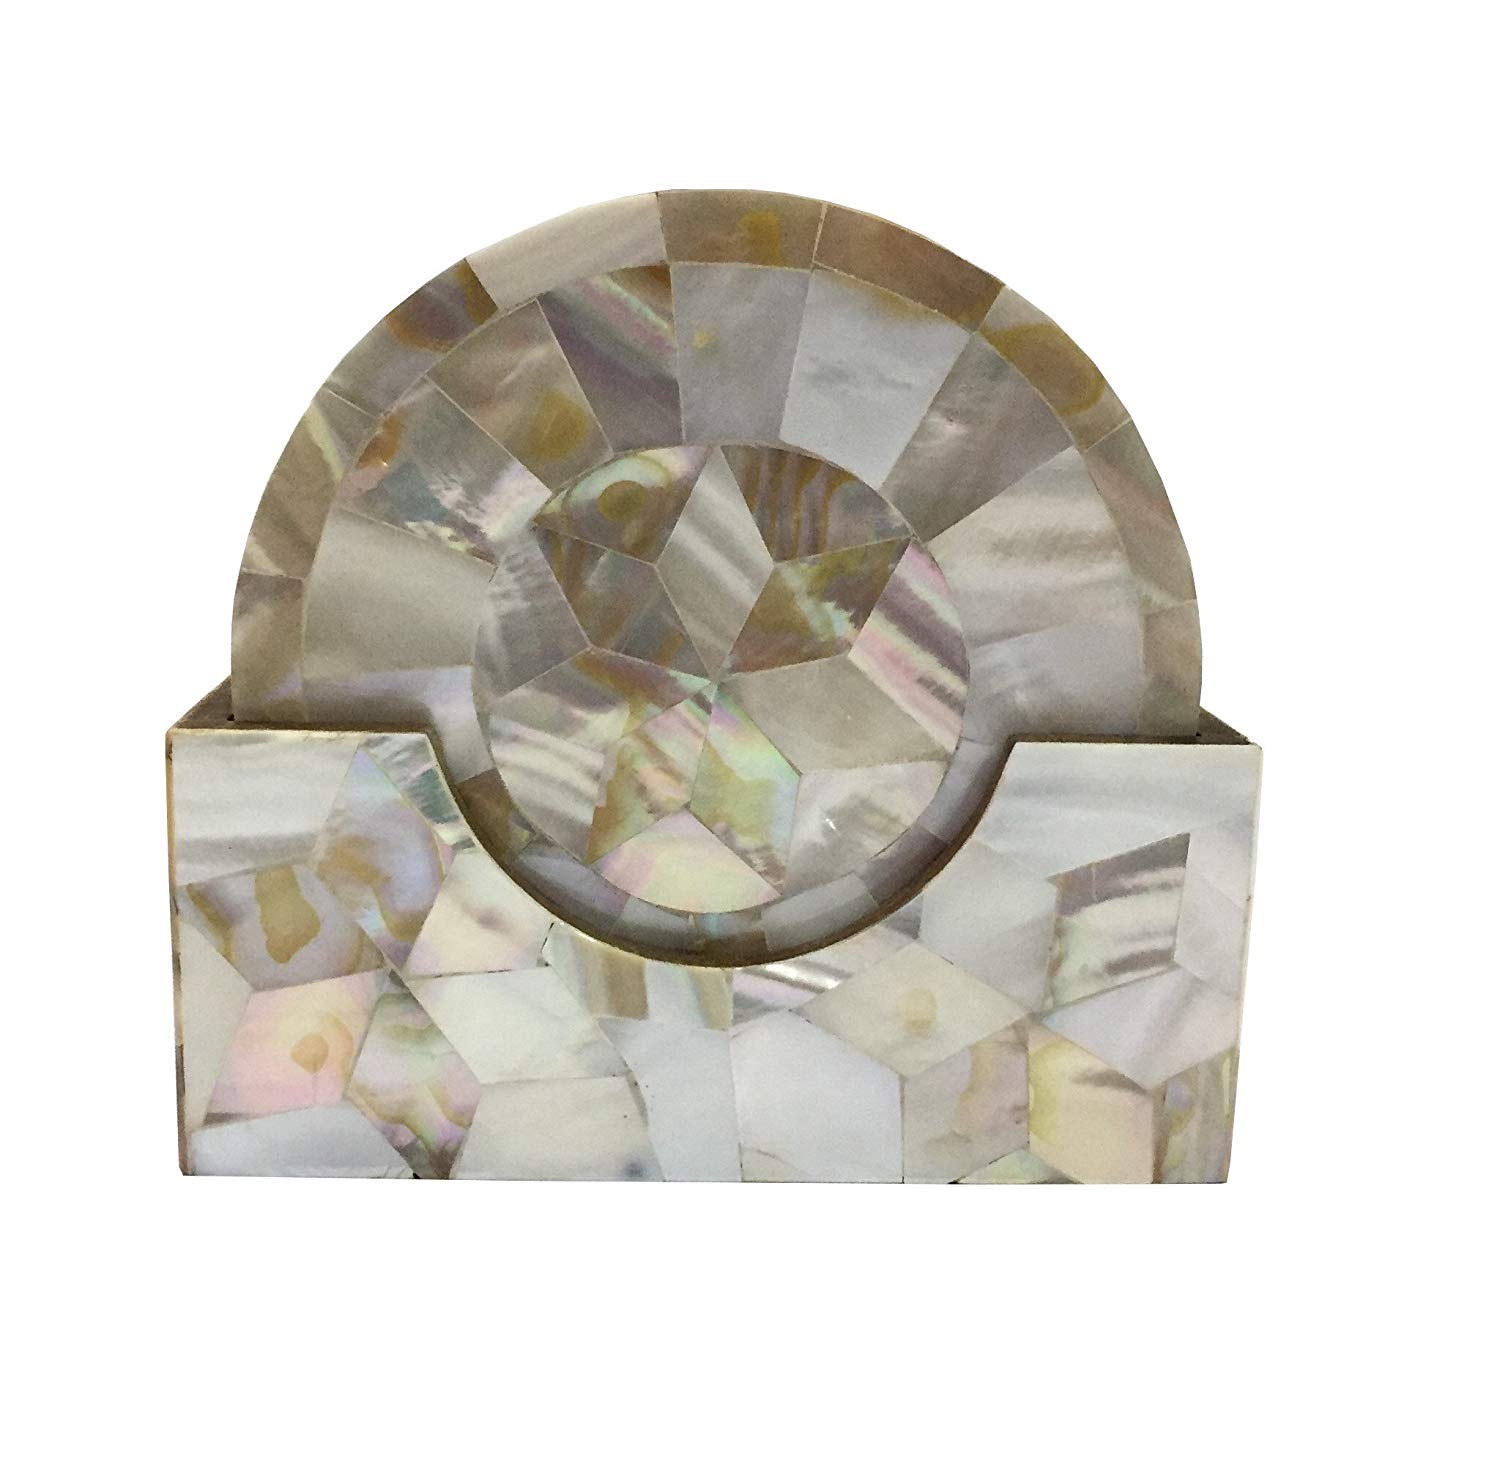 Trend Decorative Mother of Pearl Coaster Set MOP Coaster Gift Item Home Decor Corporate Gift Unique Coaster (White MOP)